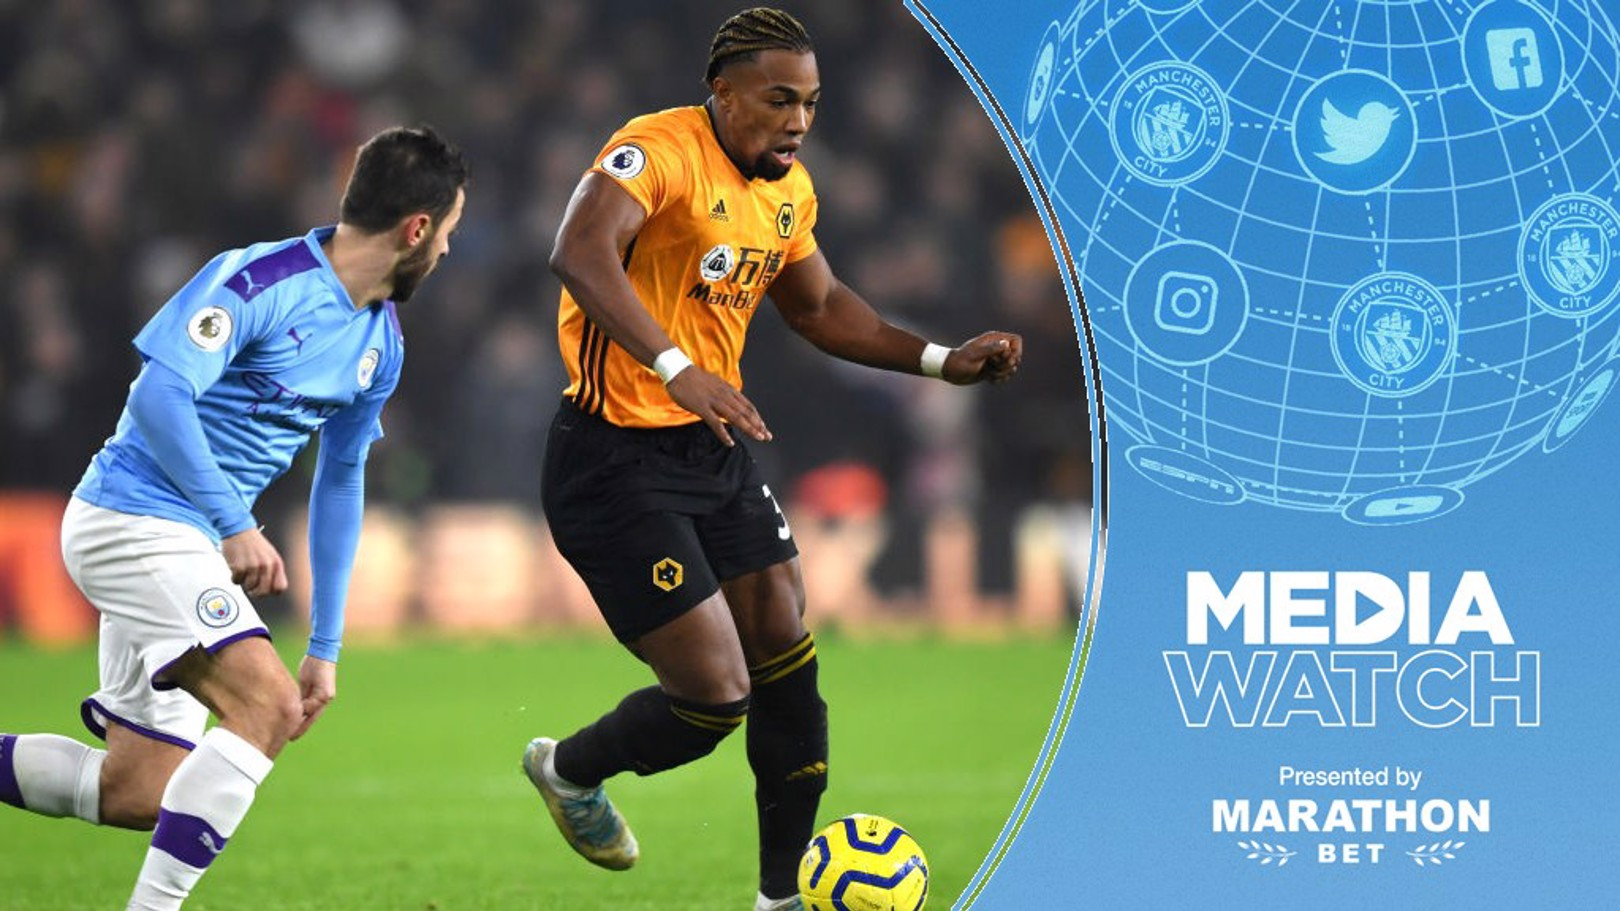 MEDIA WATCH: Press reports are suggesting City are eyeing Wolves' Adama Traore.